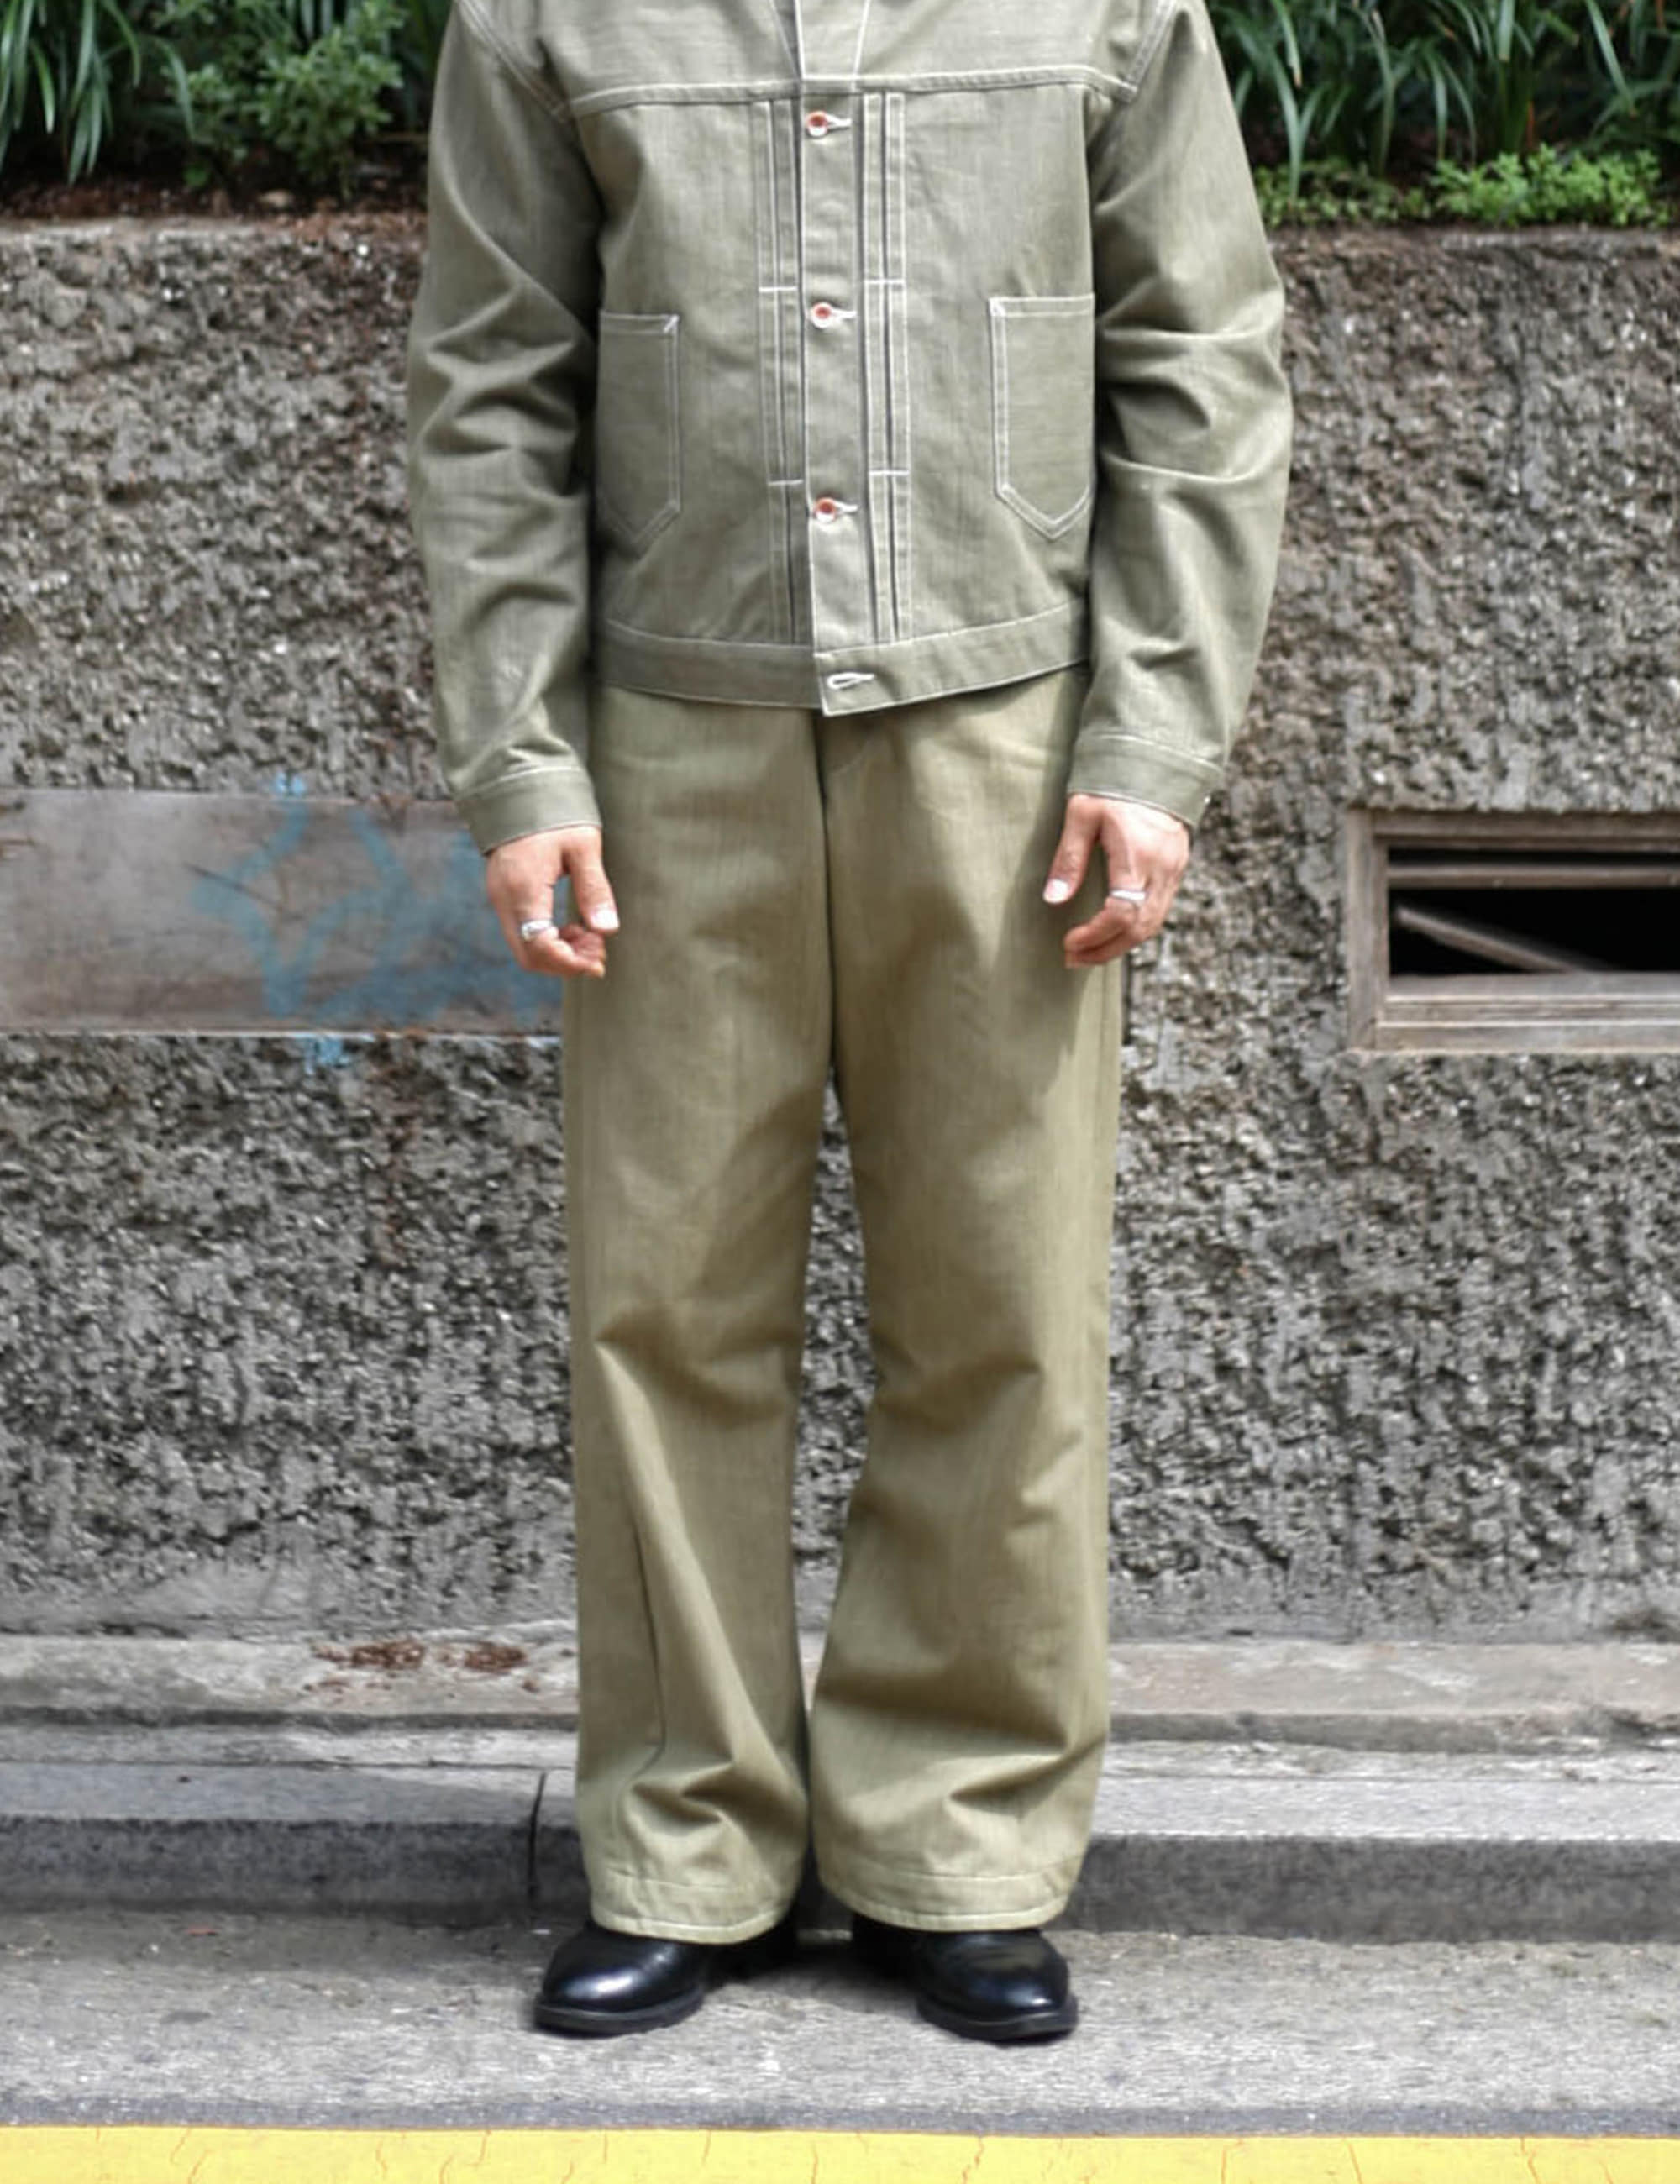 TWISTY BOY JEANS_KHAKI GREEN SELVEDGE DENIM